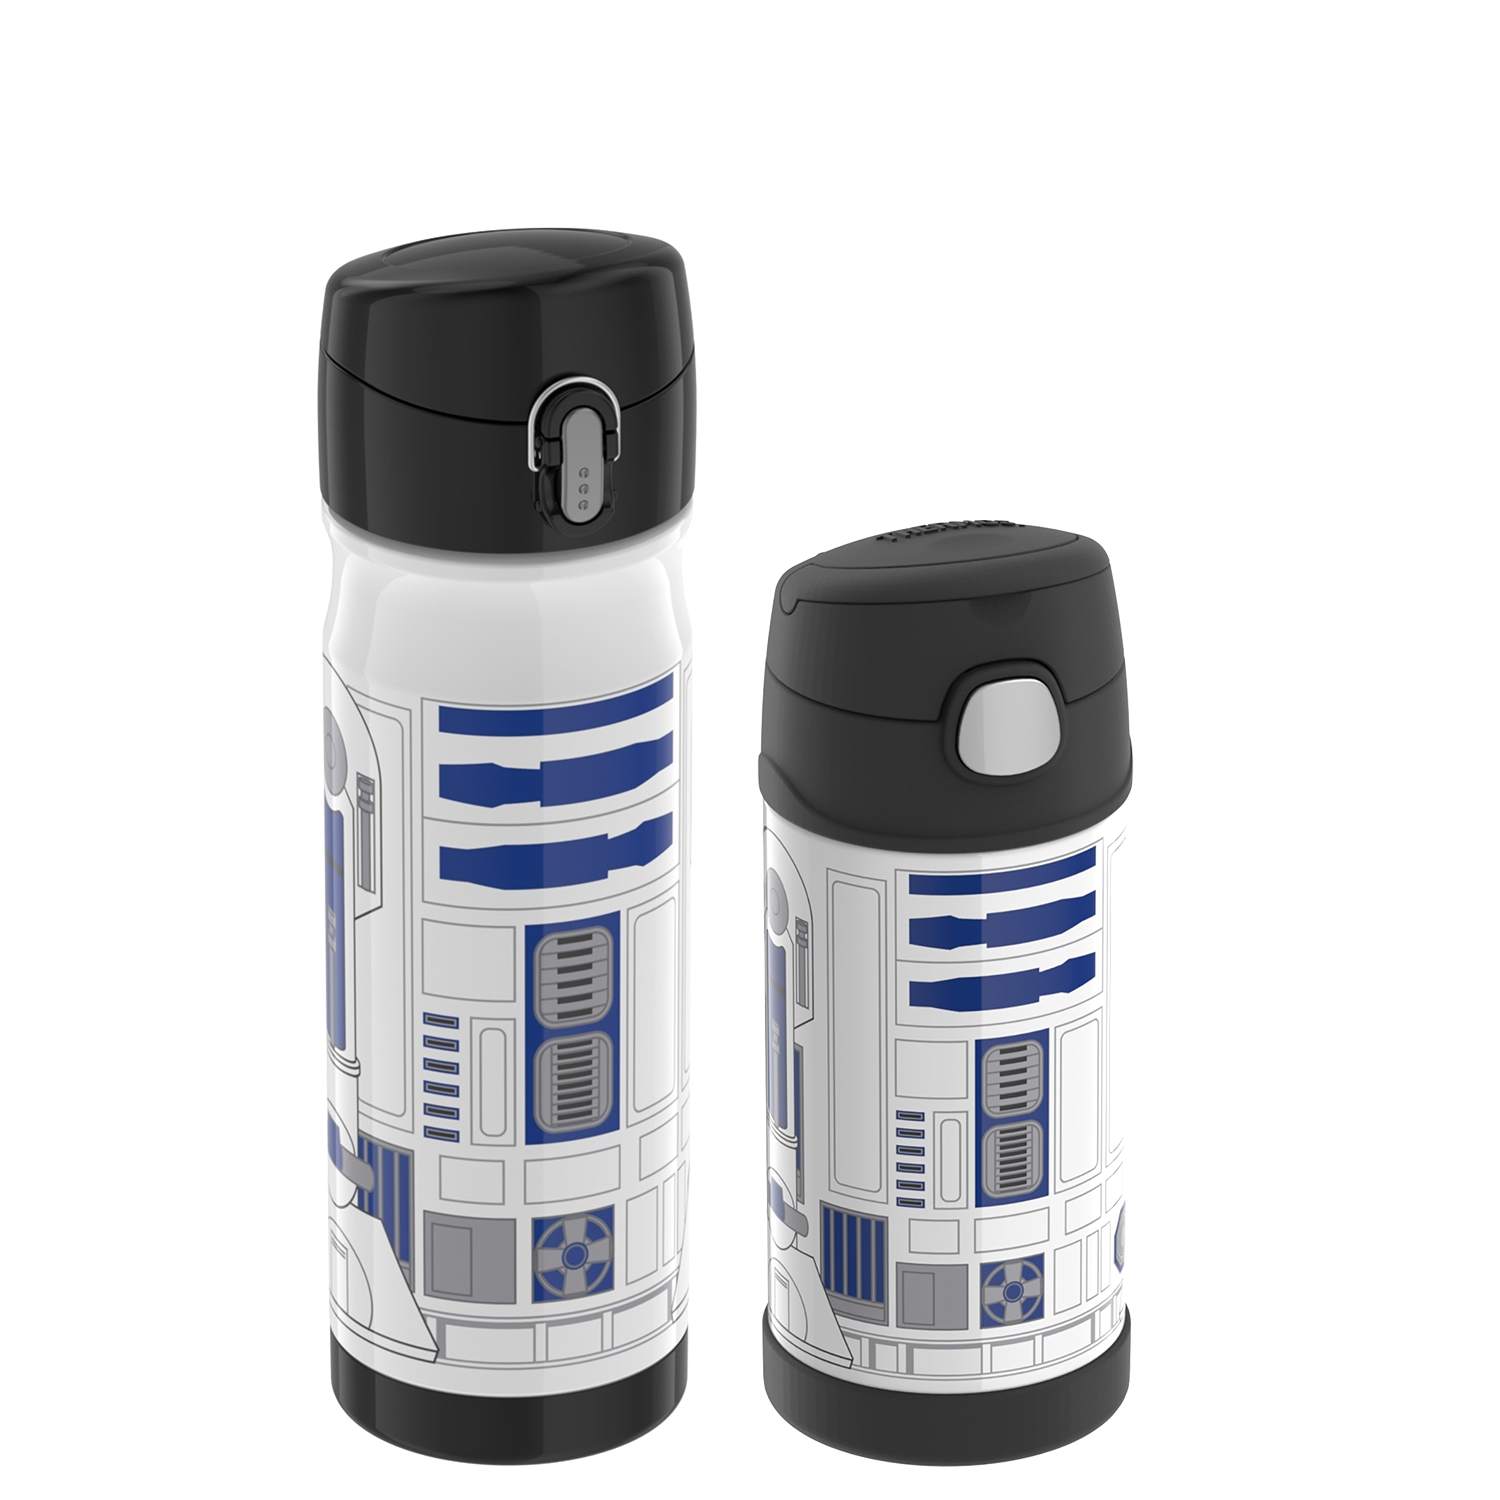 STAINLESS STEEL DIRECT DRINK BOTTLE 16OZ WITH FUNTAINER™ BOTTLE 12OZ, STAR WARS - R2D2